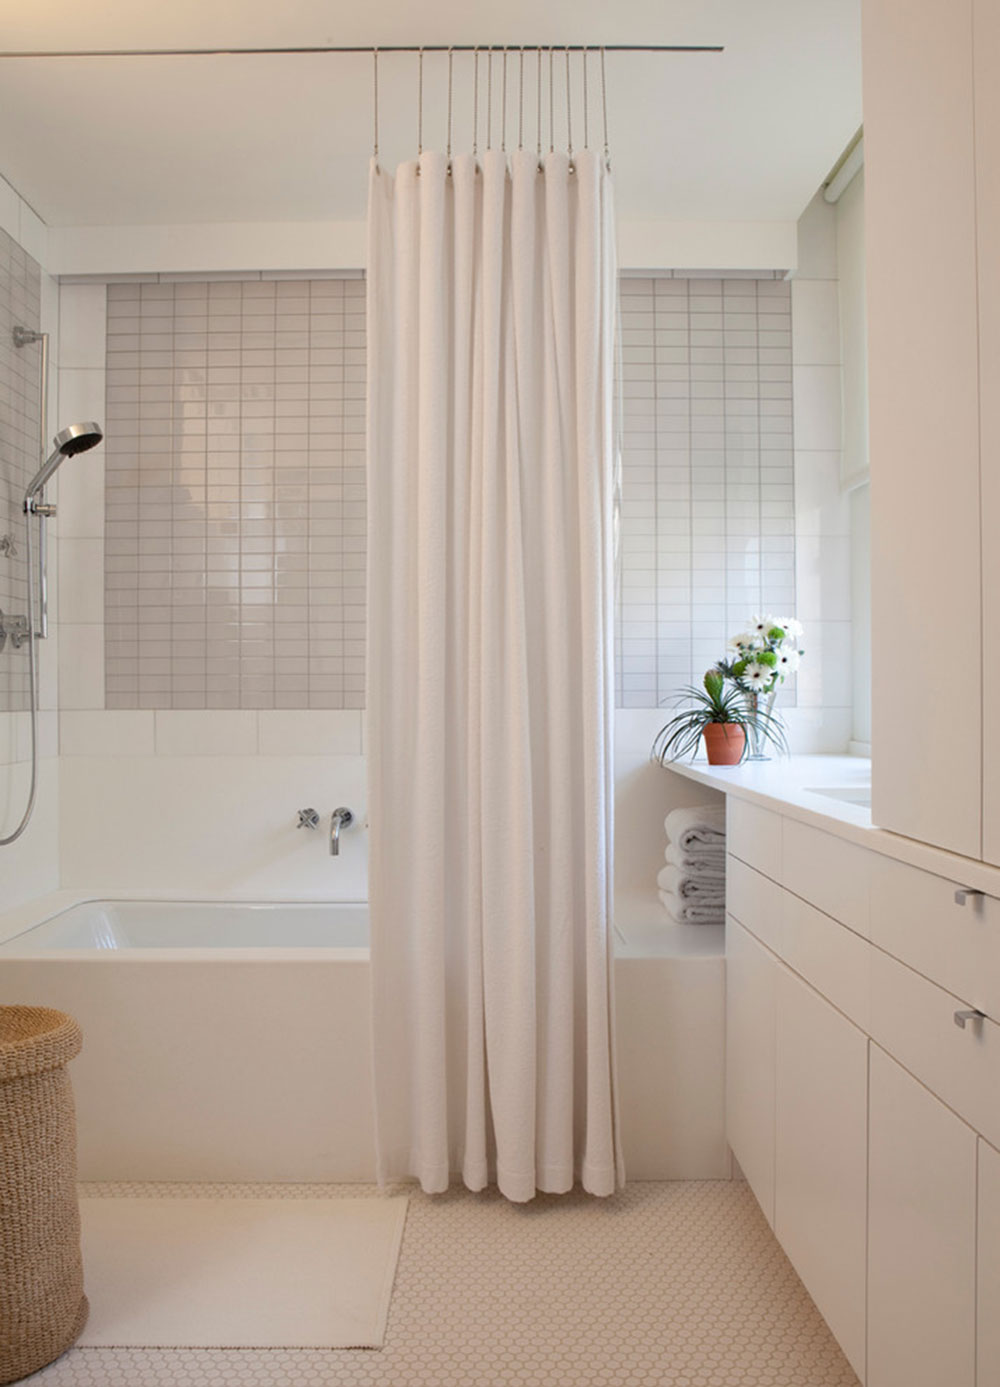 improve your bath appearance with trendy shower curtain3 trendy